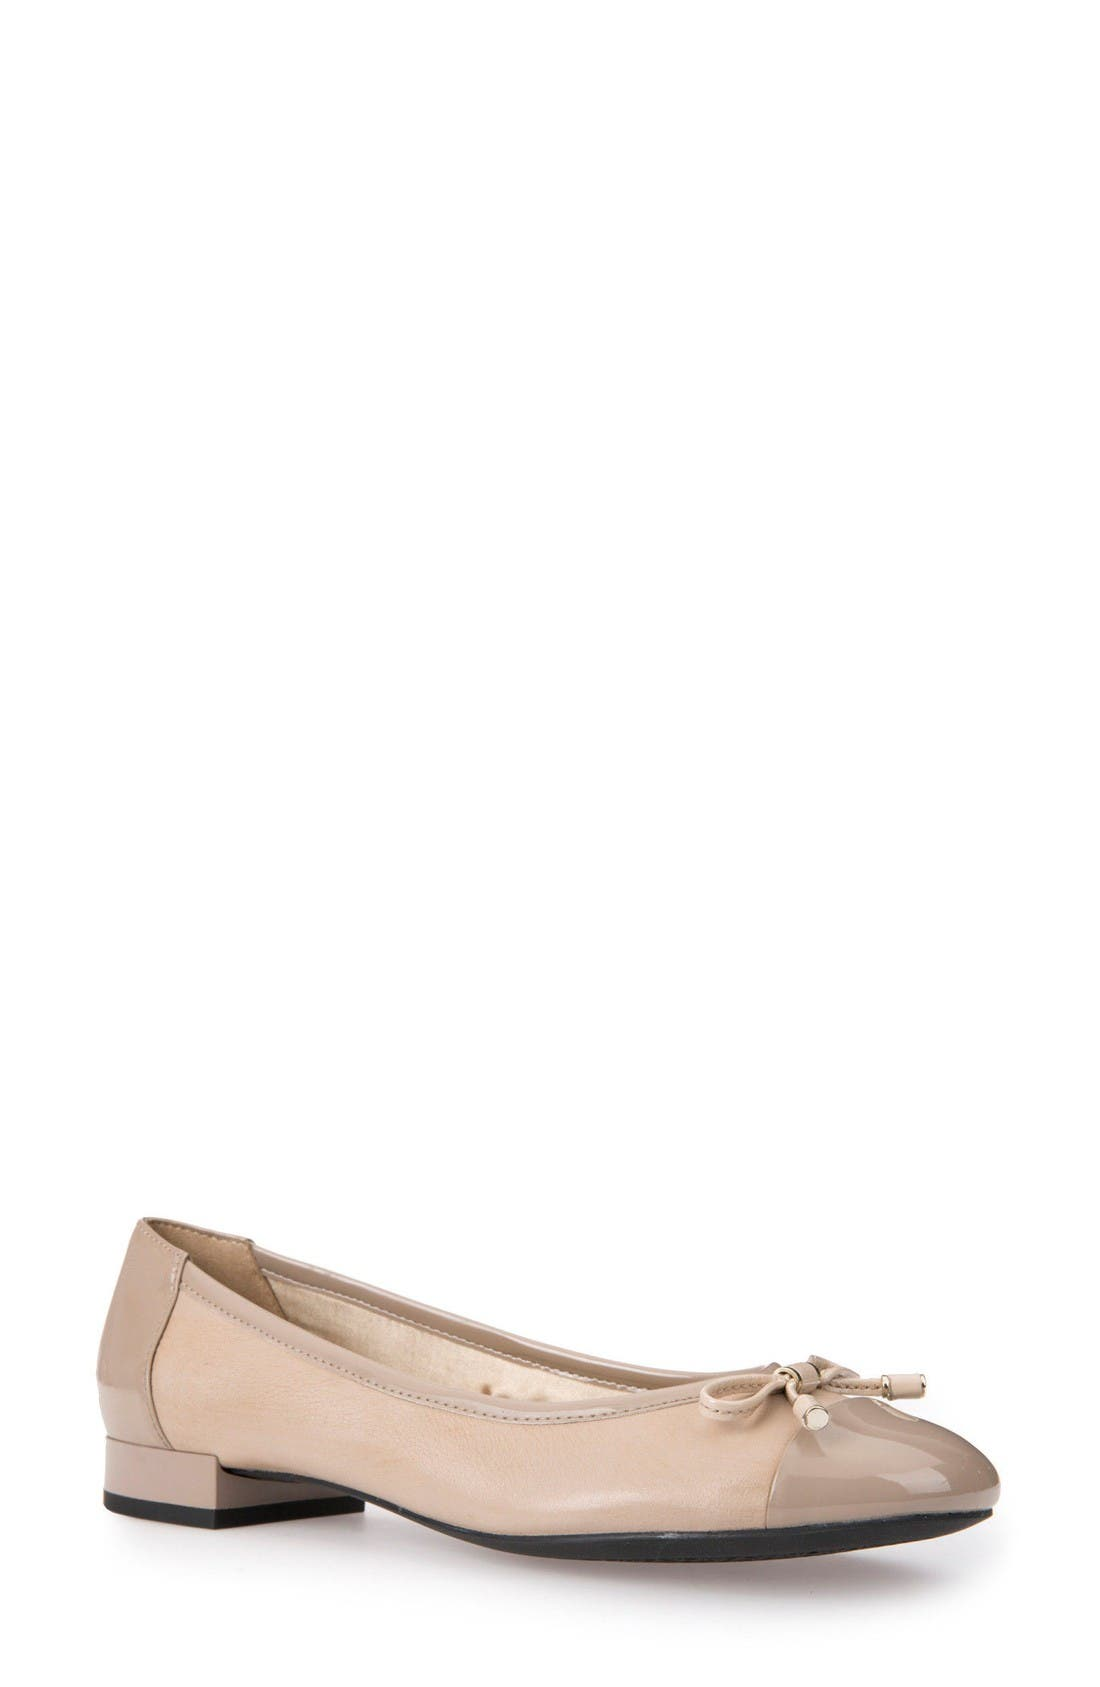 Wistrey Flat,                         Main,                         color, Taupe Leather